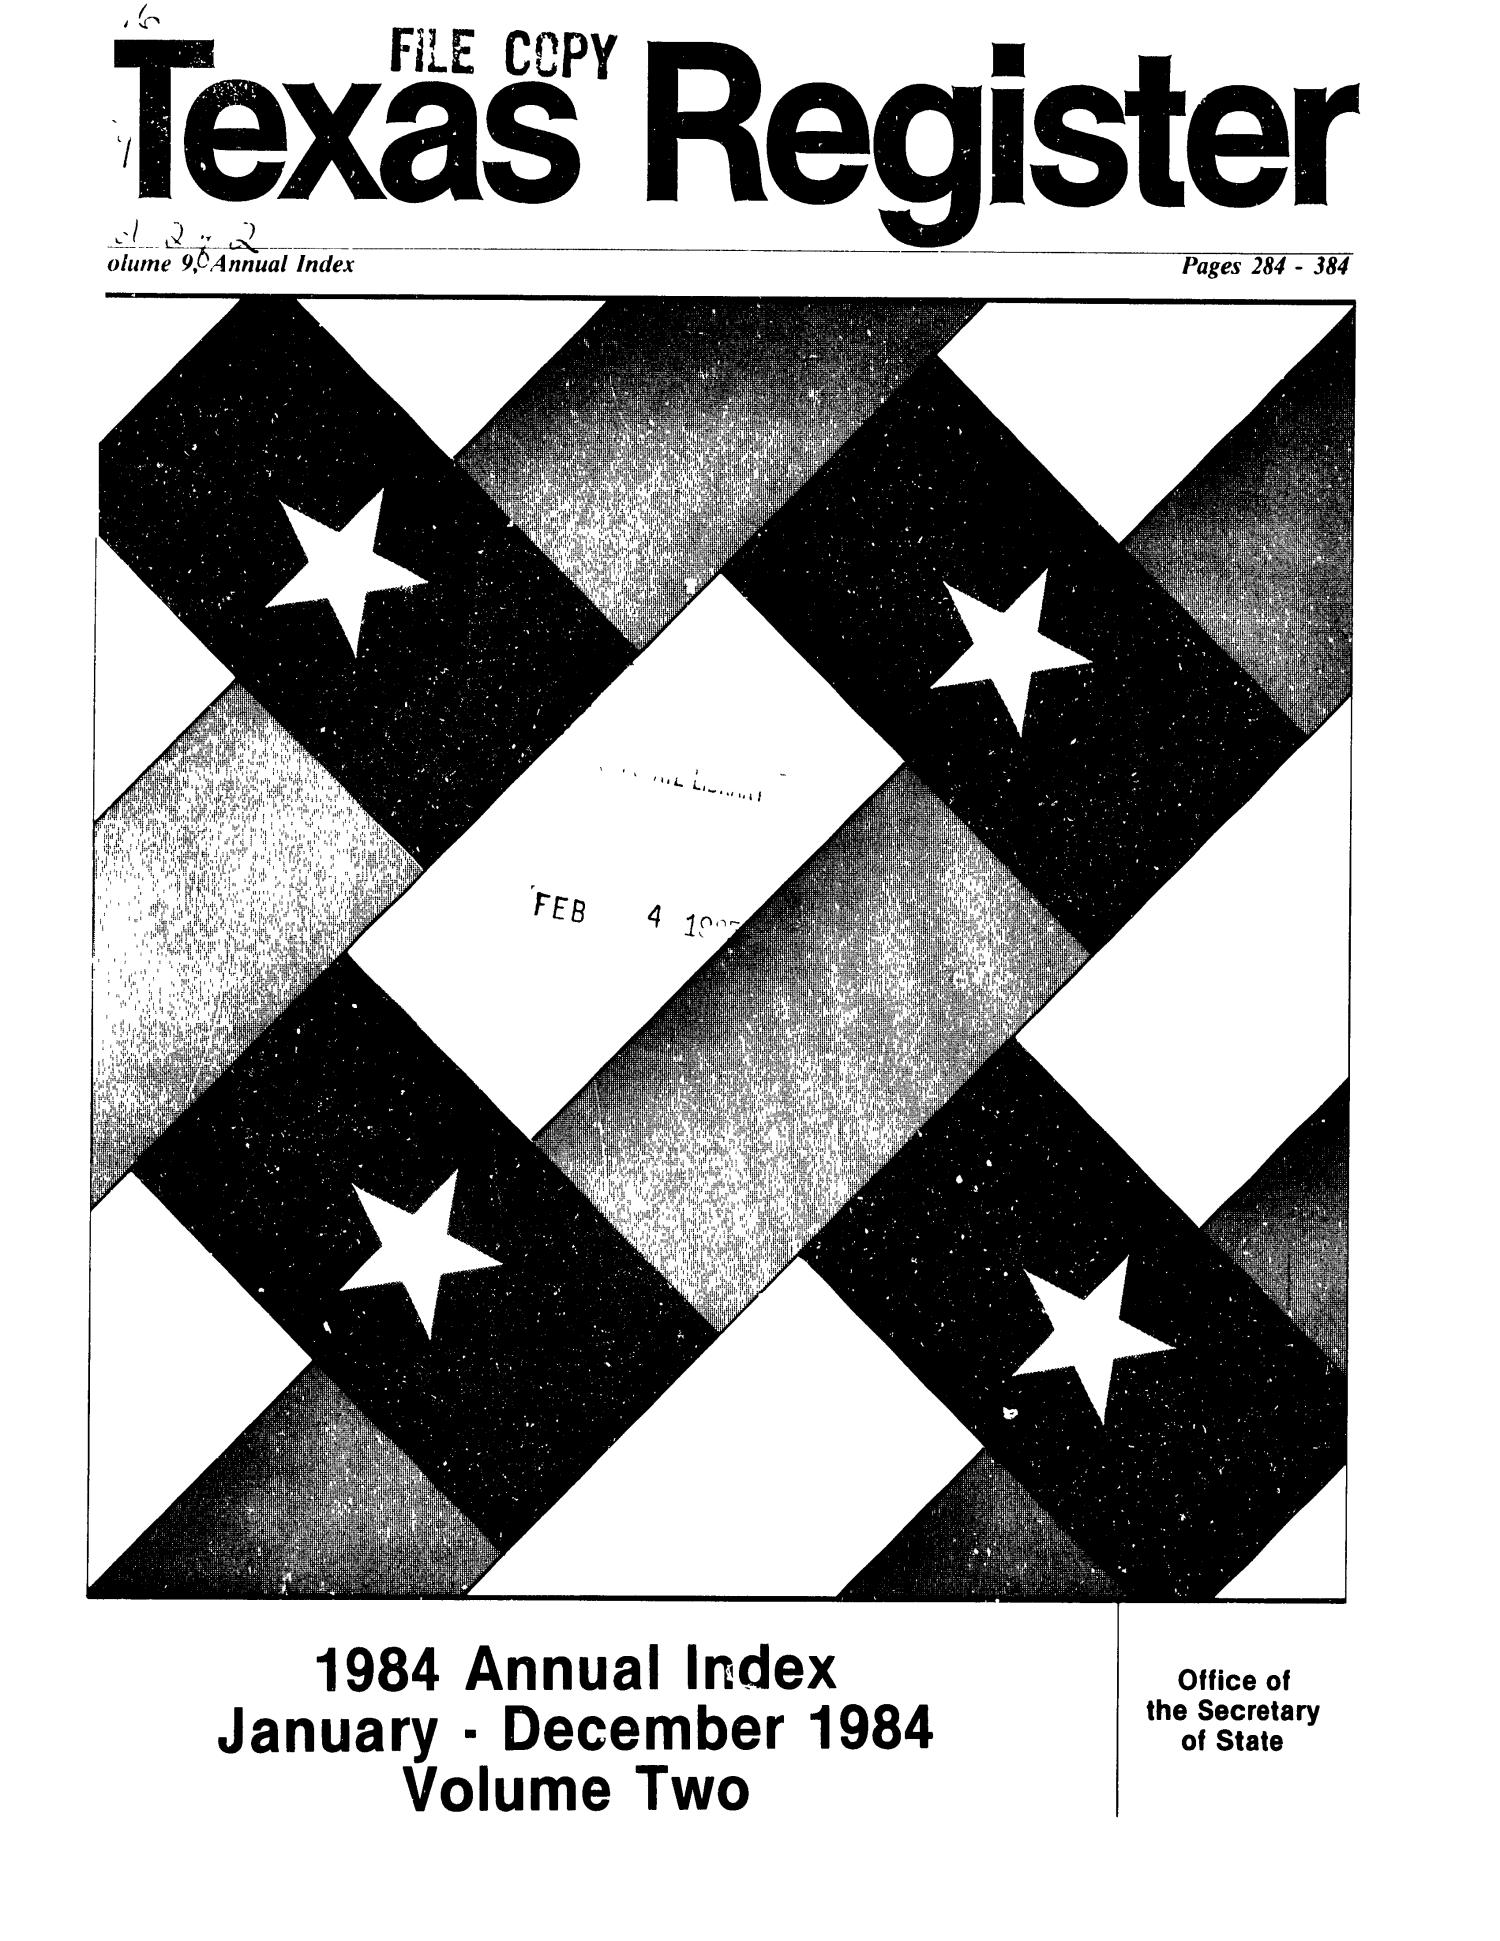 Texas Register: Annual Index January 1984 - December 1984, Volume 9 [Part Two], Pages 284-384, February 1, 1985                                                                                                      Title Page